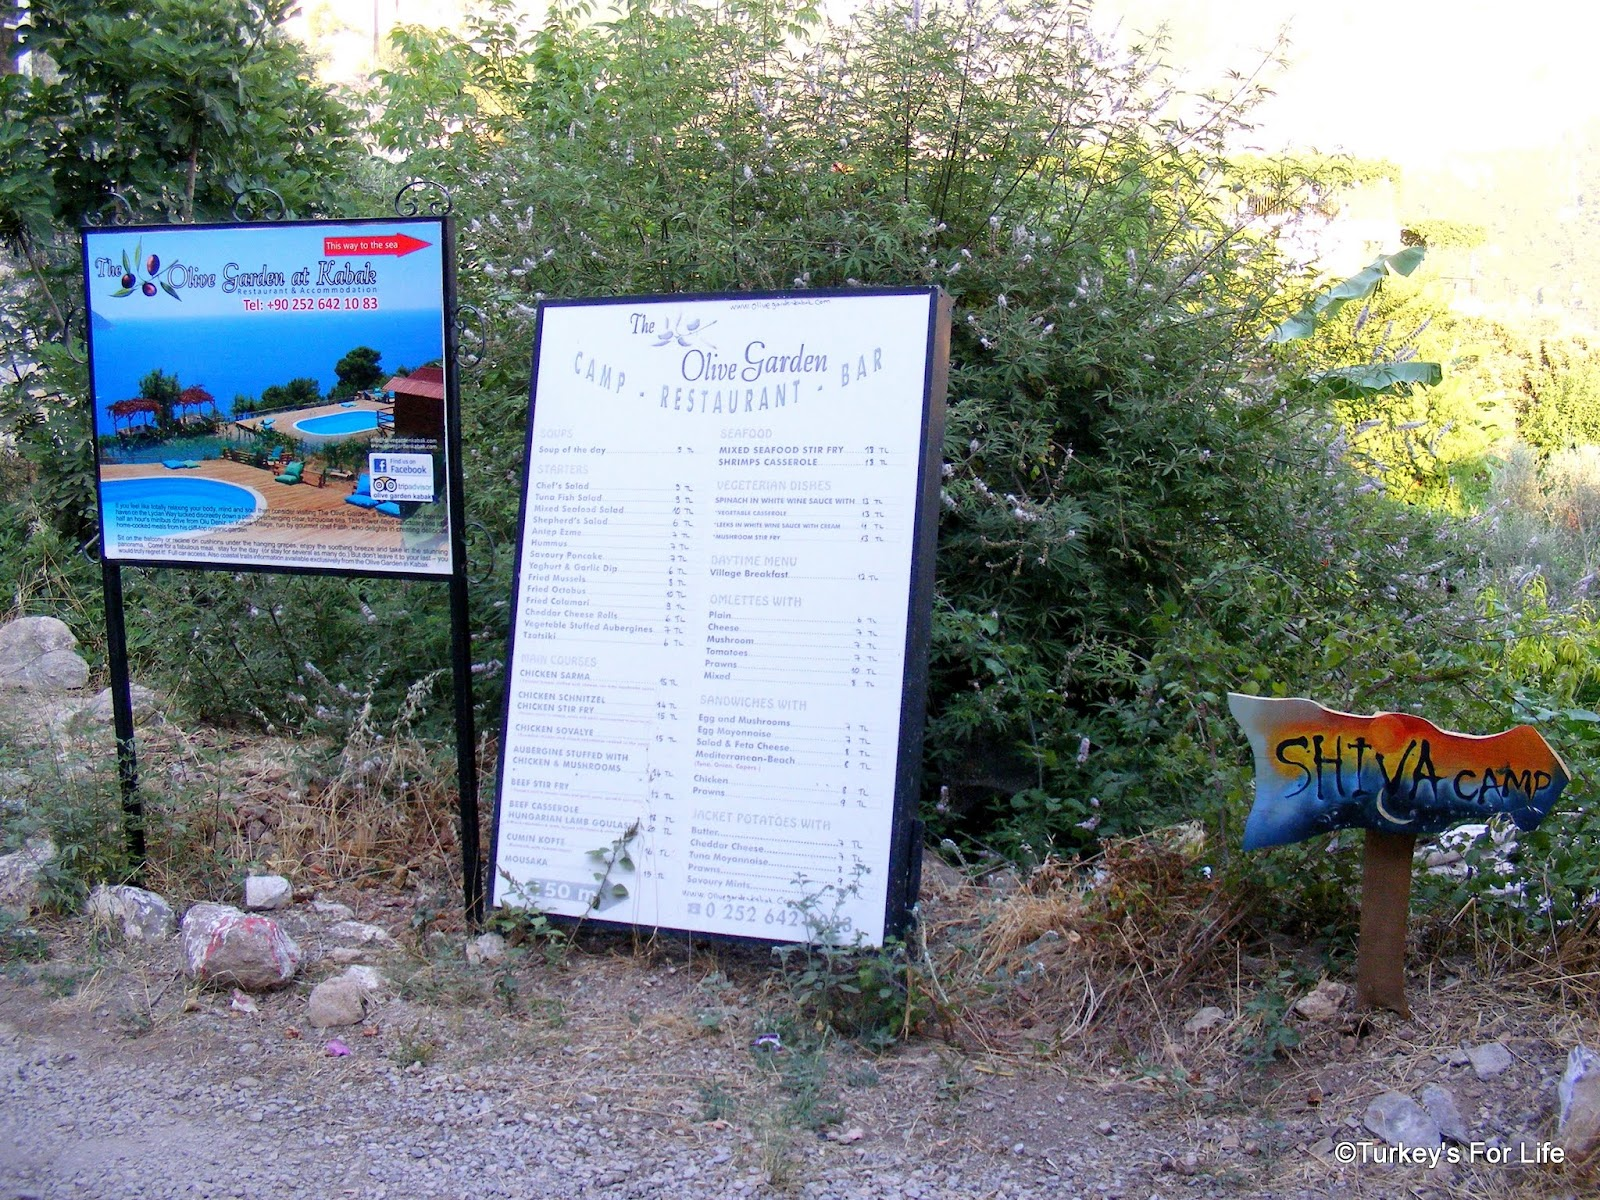 L deniz to kabak in photos turkey 39 s for life for Come on down to the olive garden